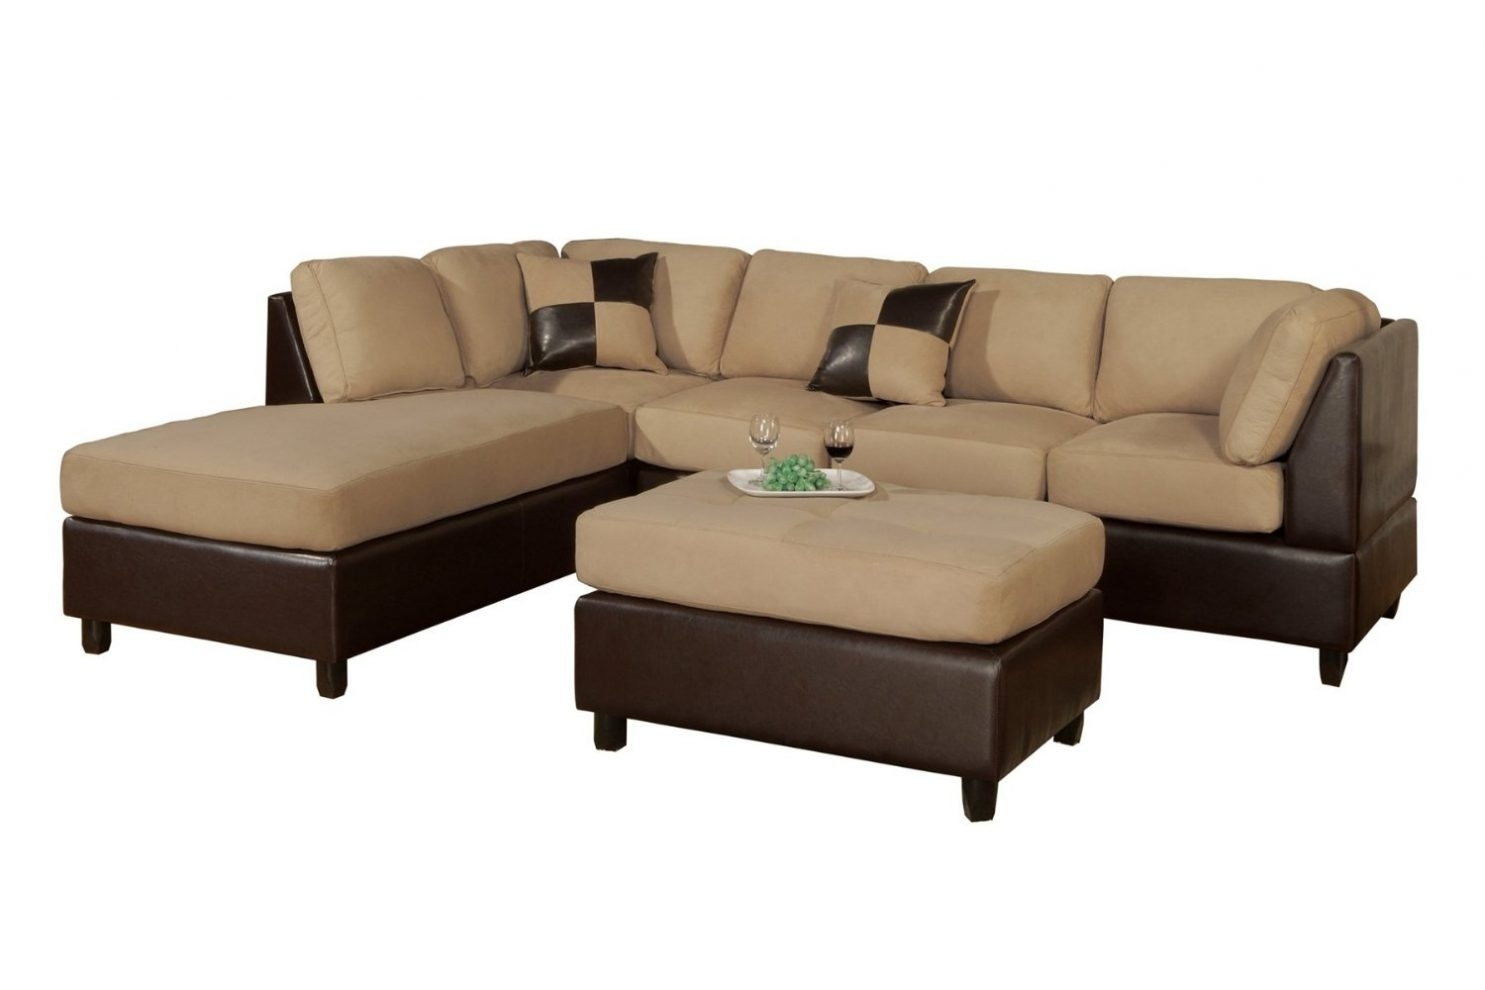 Cheap Sectional Sofas Under 300 #3 Cheap Sectional Sofas Under 300 Regarding Sectional Sofas Under (View 2 of 15)